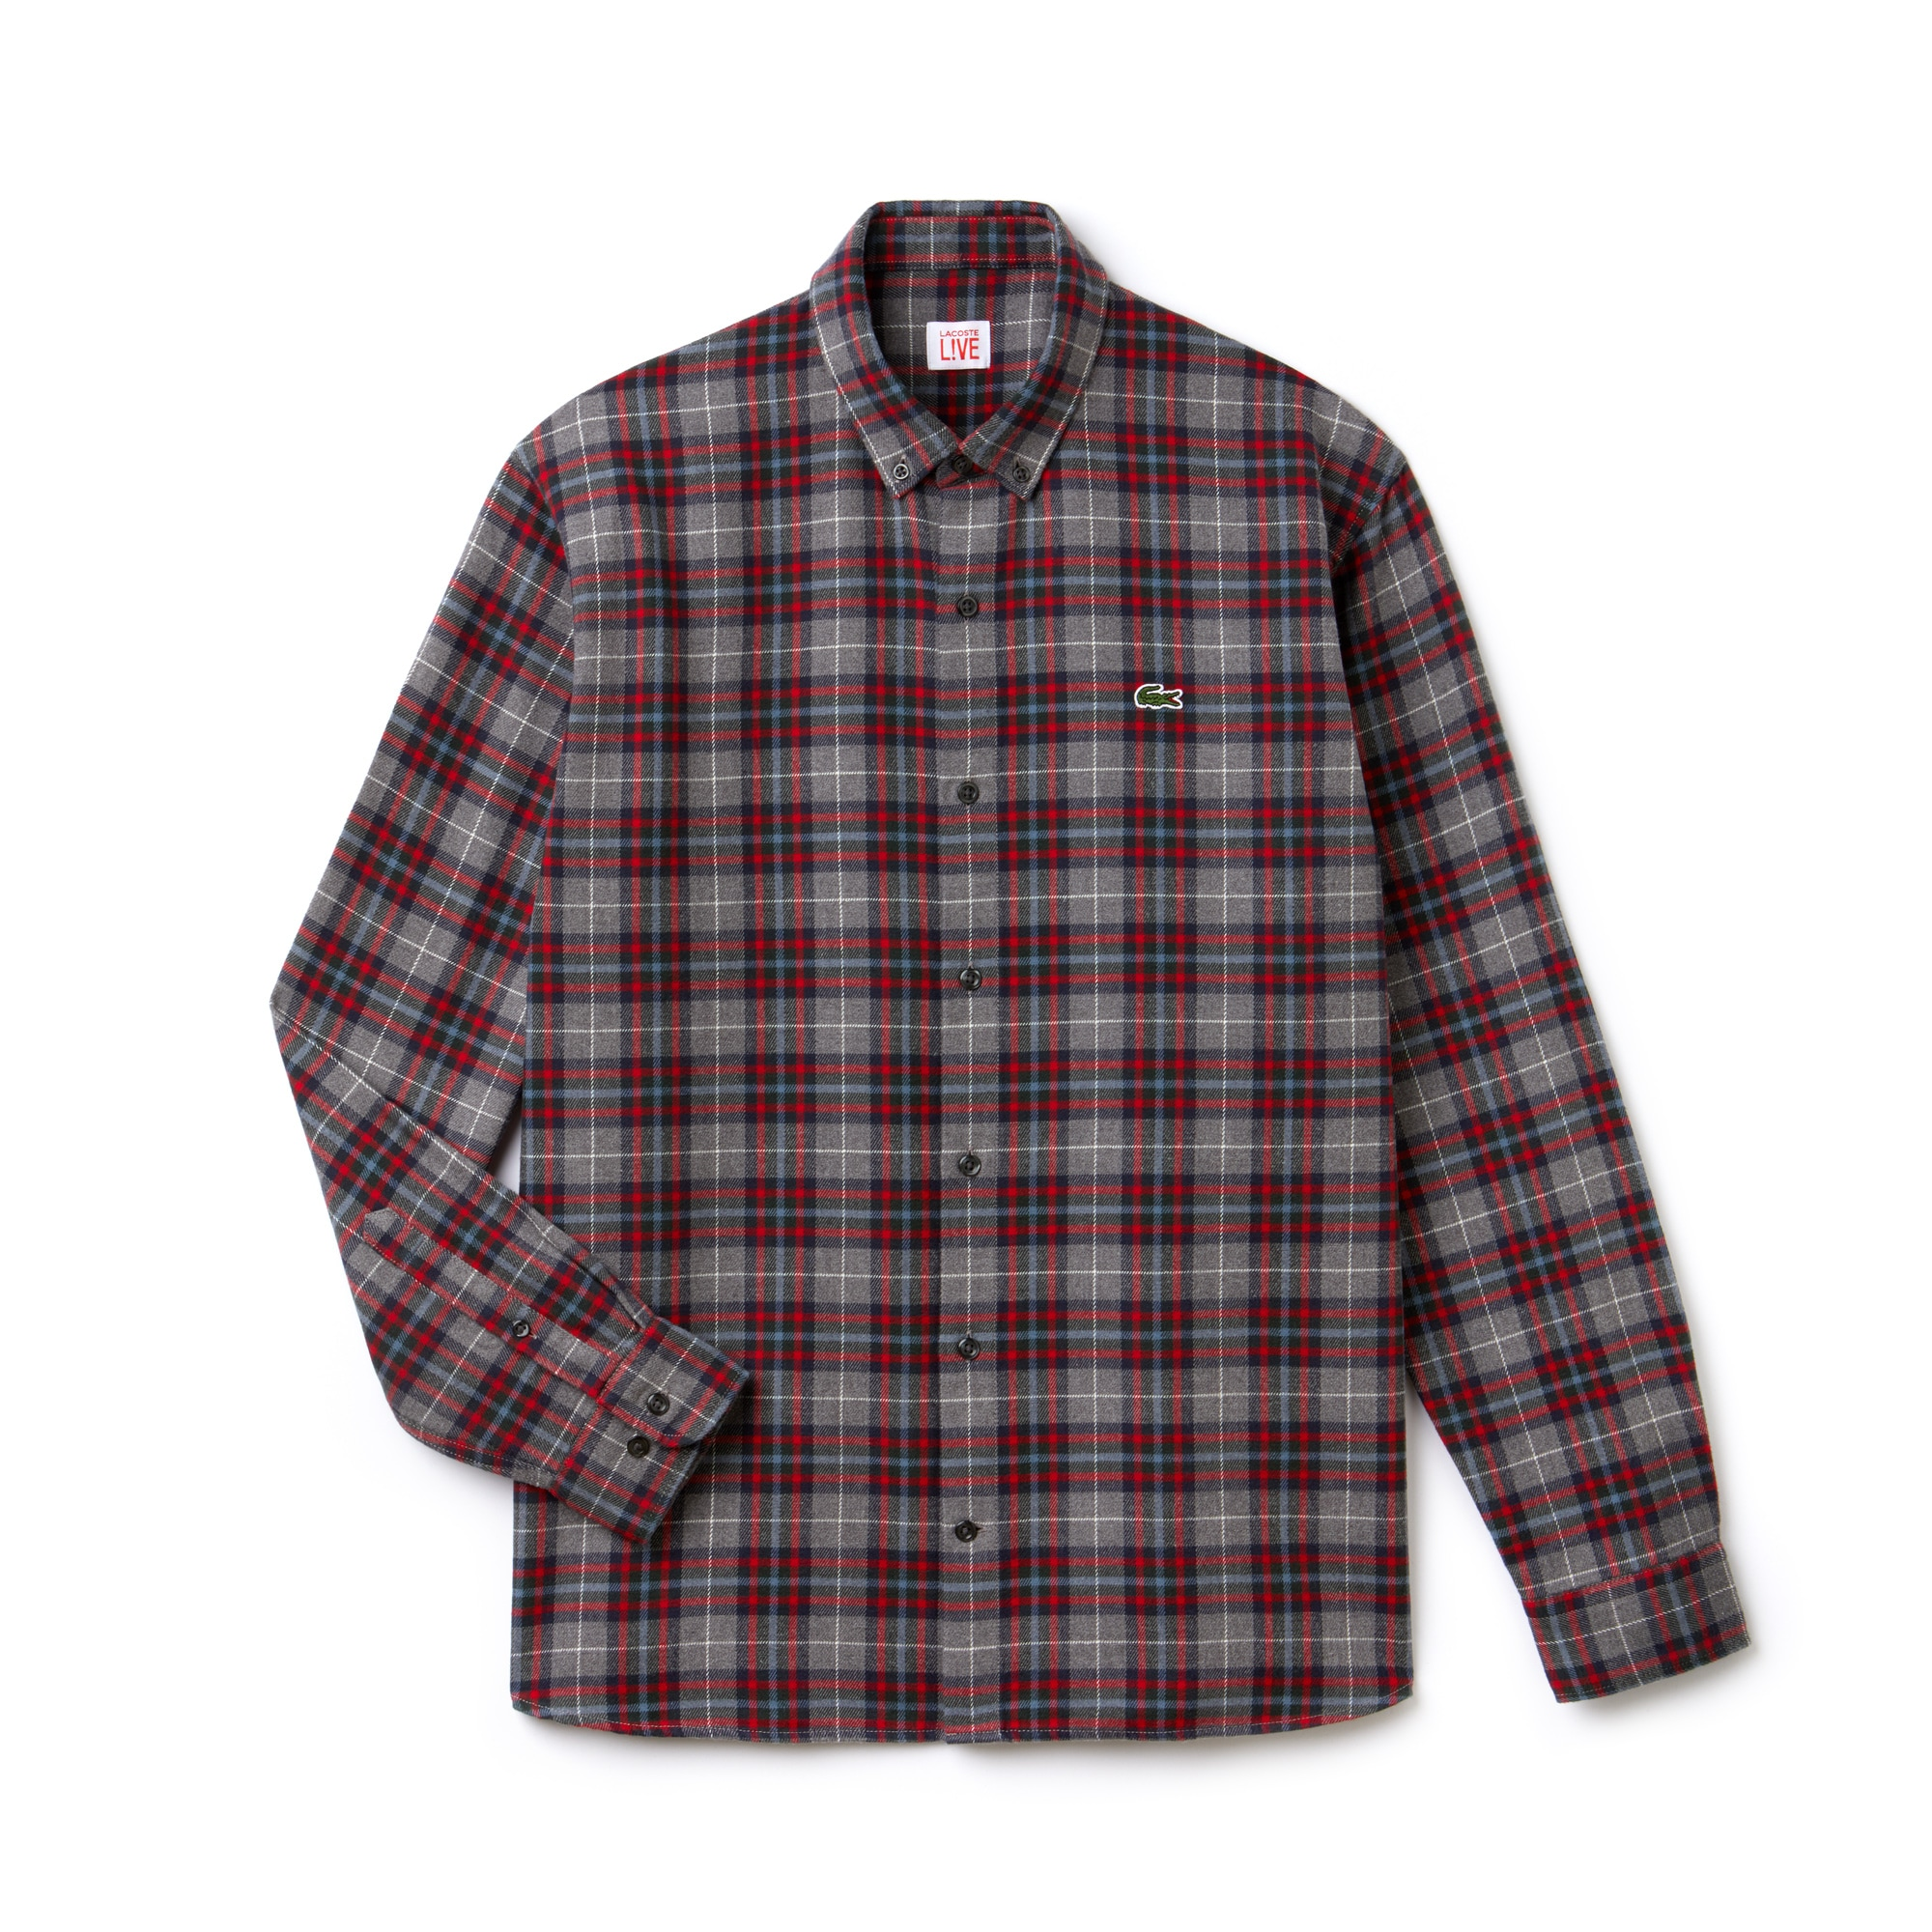 Men's Lacoste LIVE Boxy Fit Check Cotton Flannel Shirt